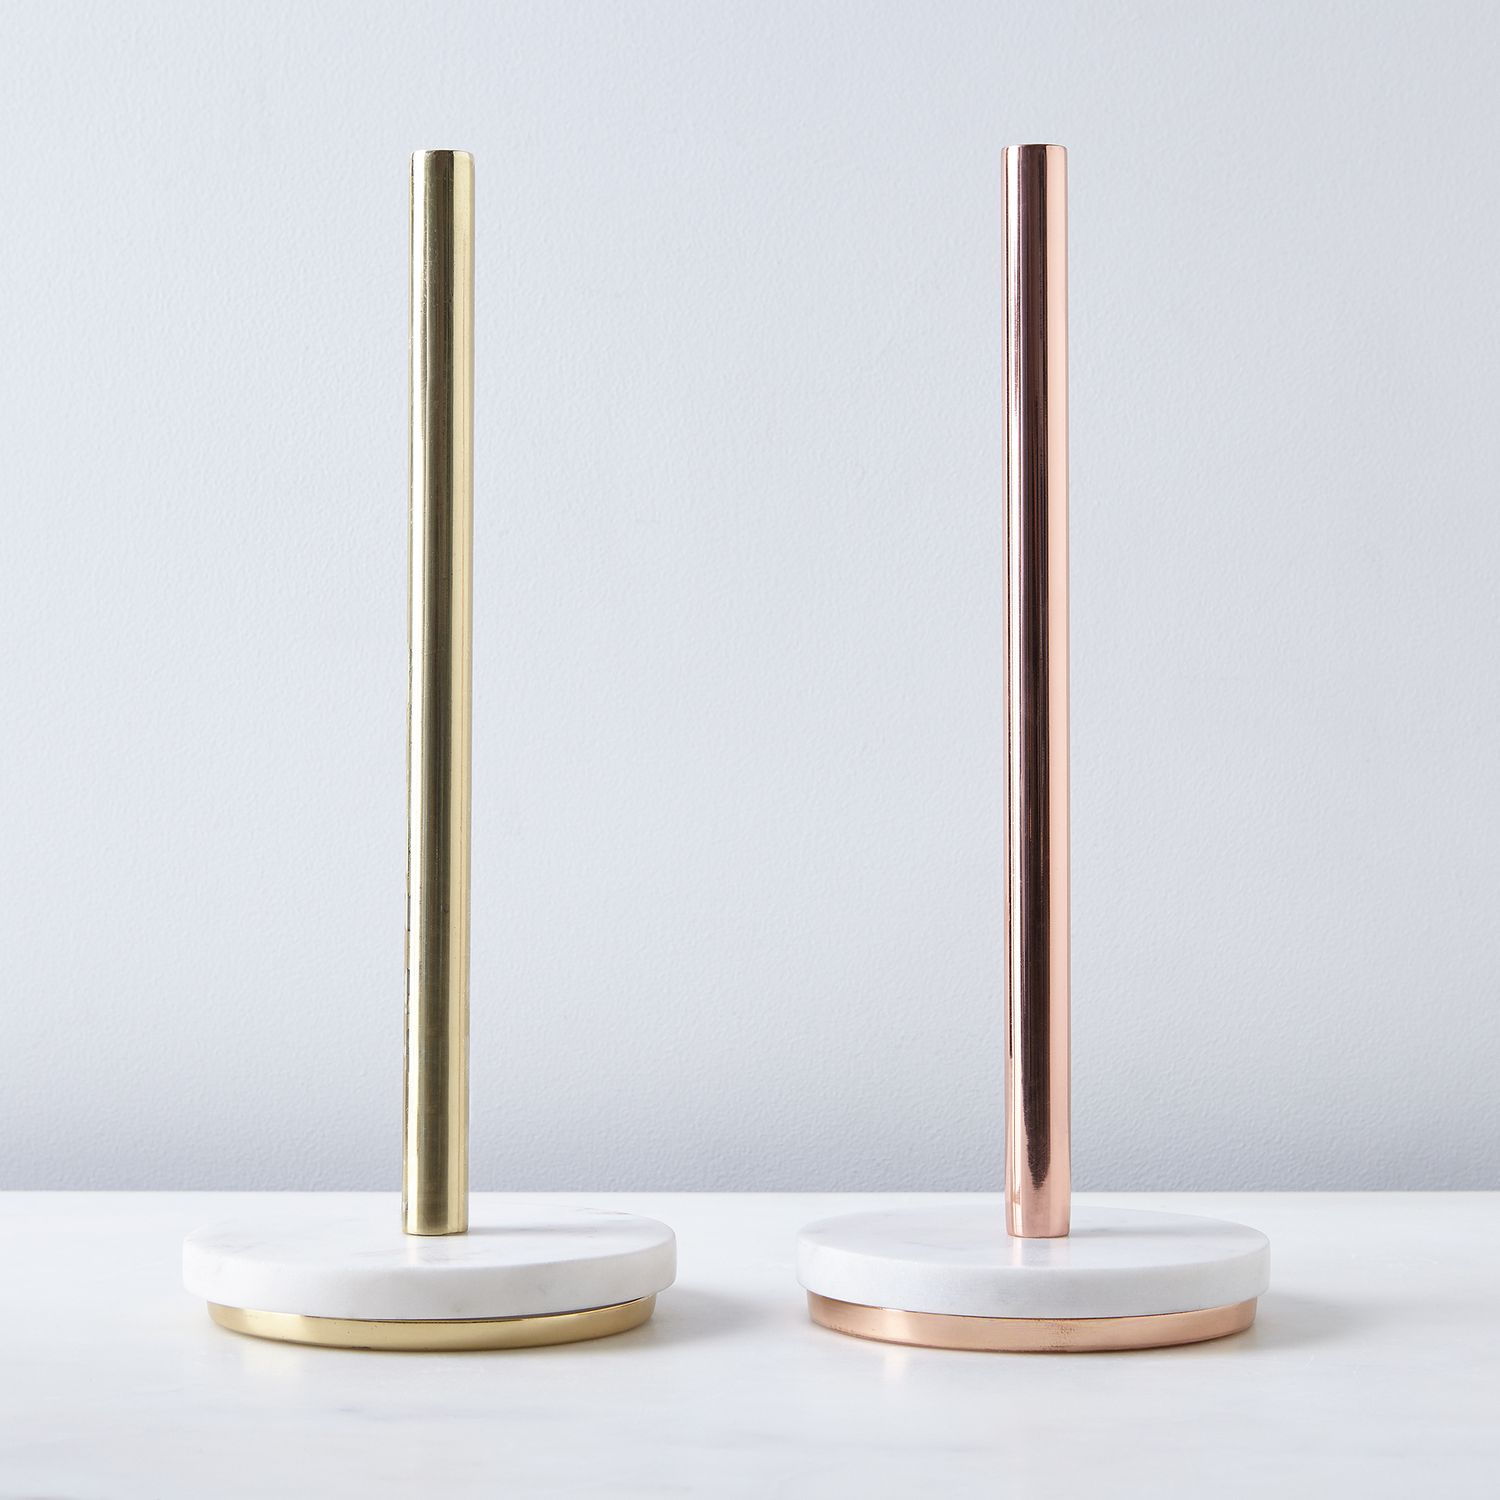 Marble & Metal Paper Towel Holder on Food52